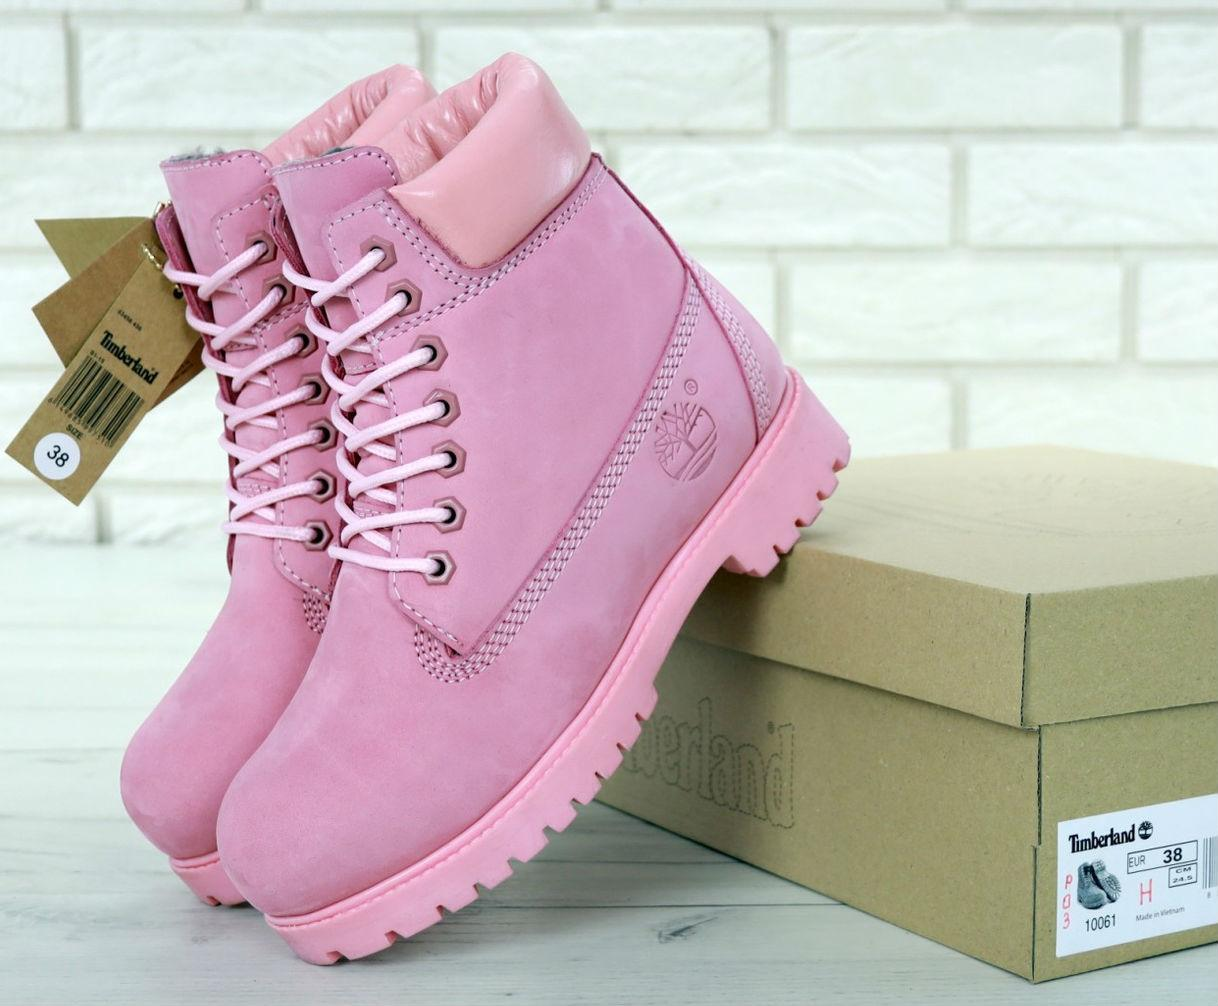 Timberland 6 inch Pink Boots (с мехом)  1d20bfbbaccd0